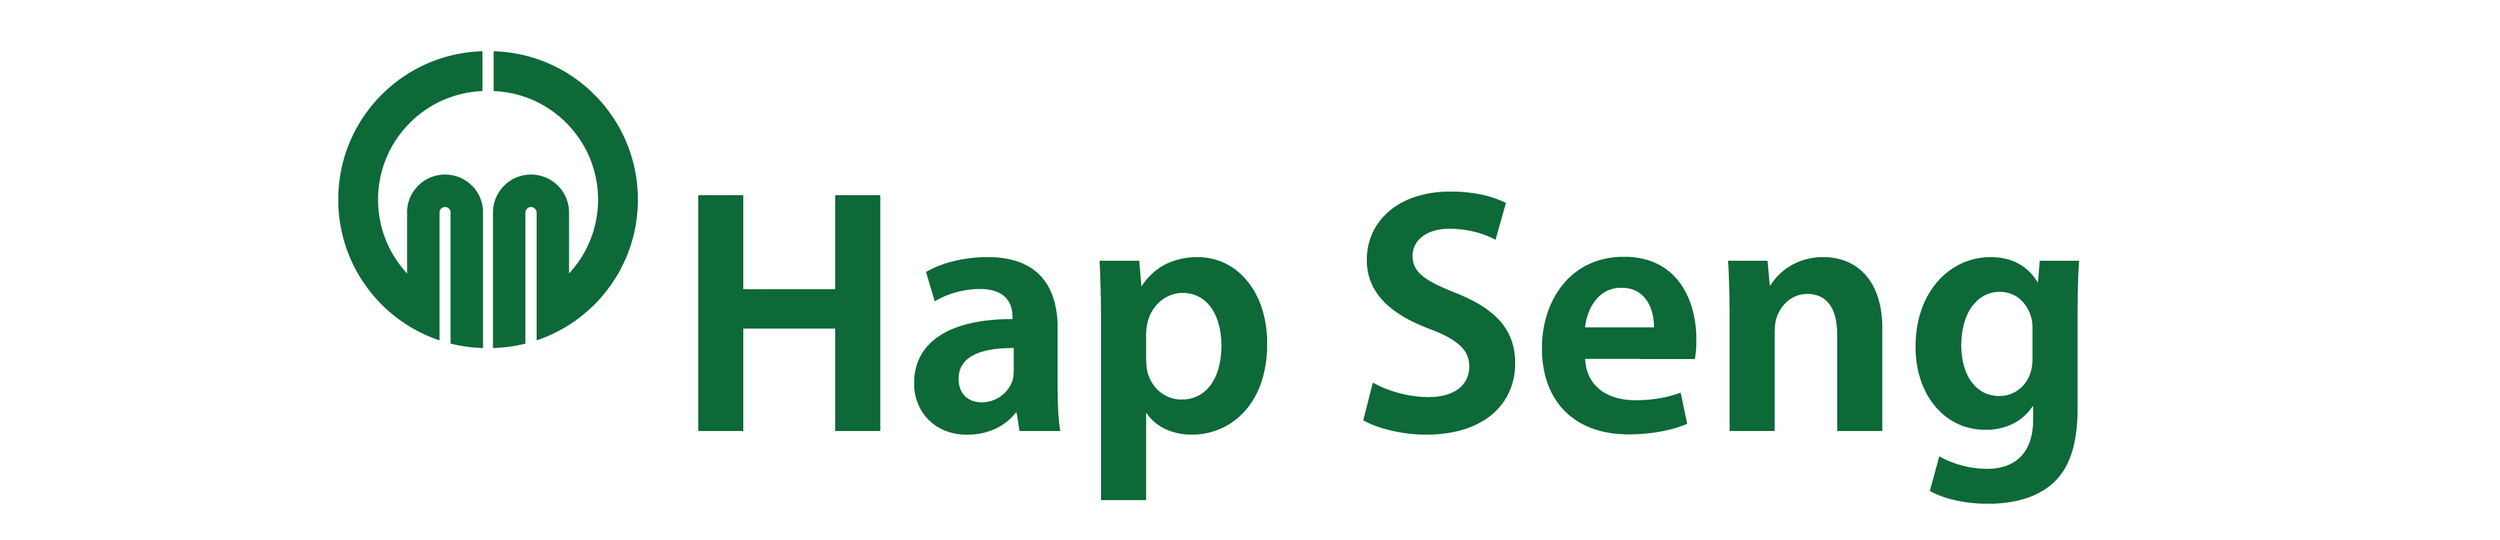 The final version. The symbol-mark has been strengthened to better match the bold Hap Seng typeface.